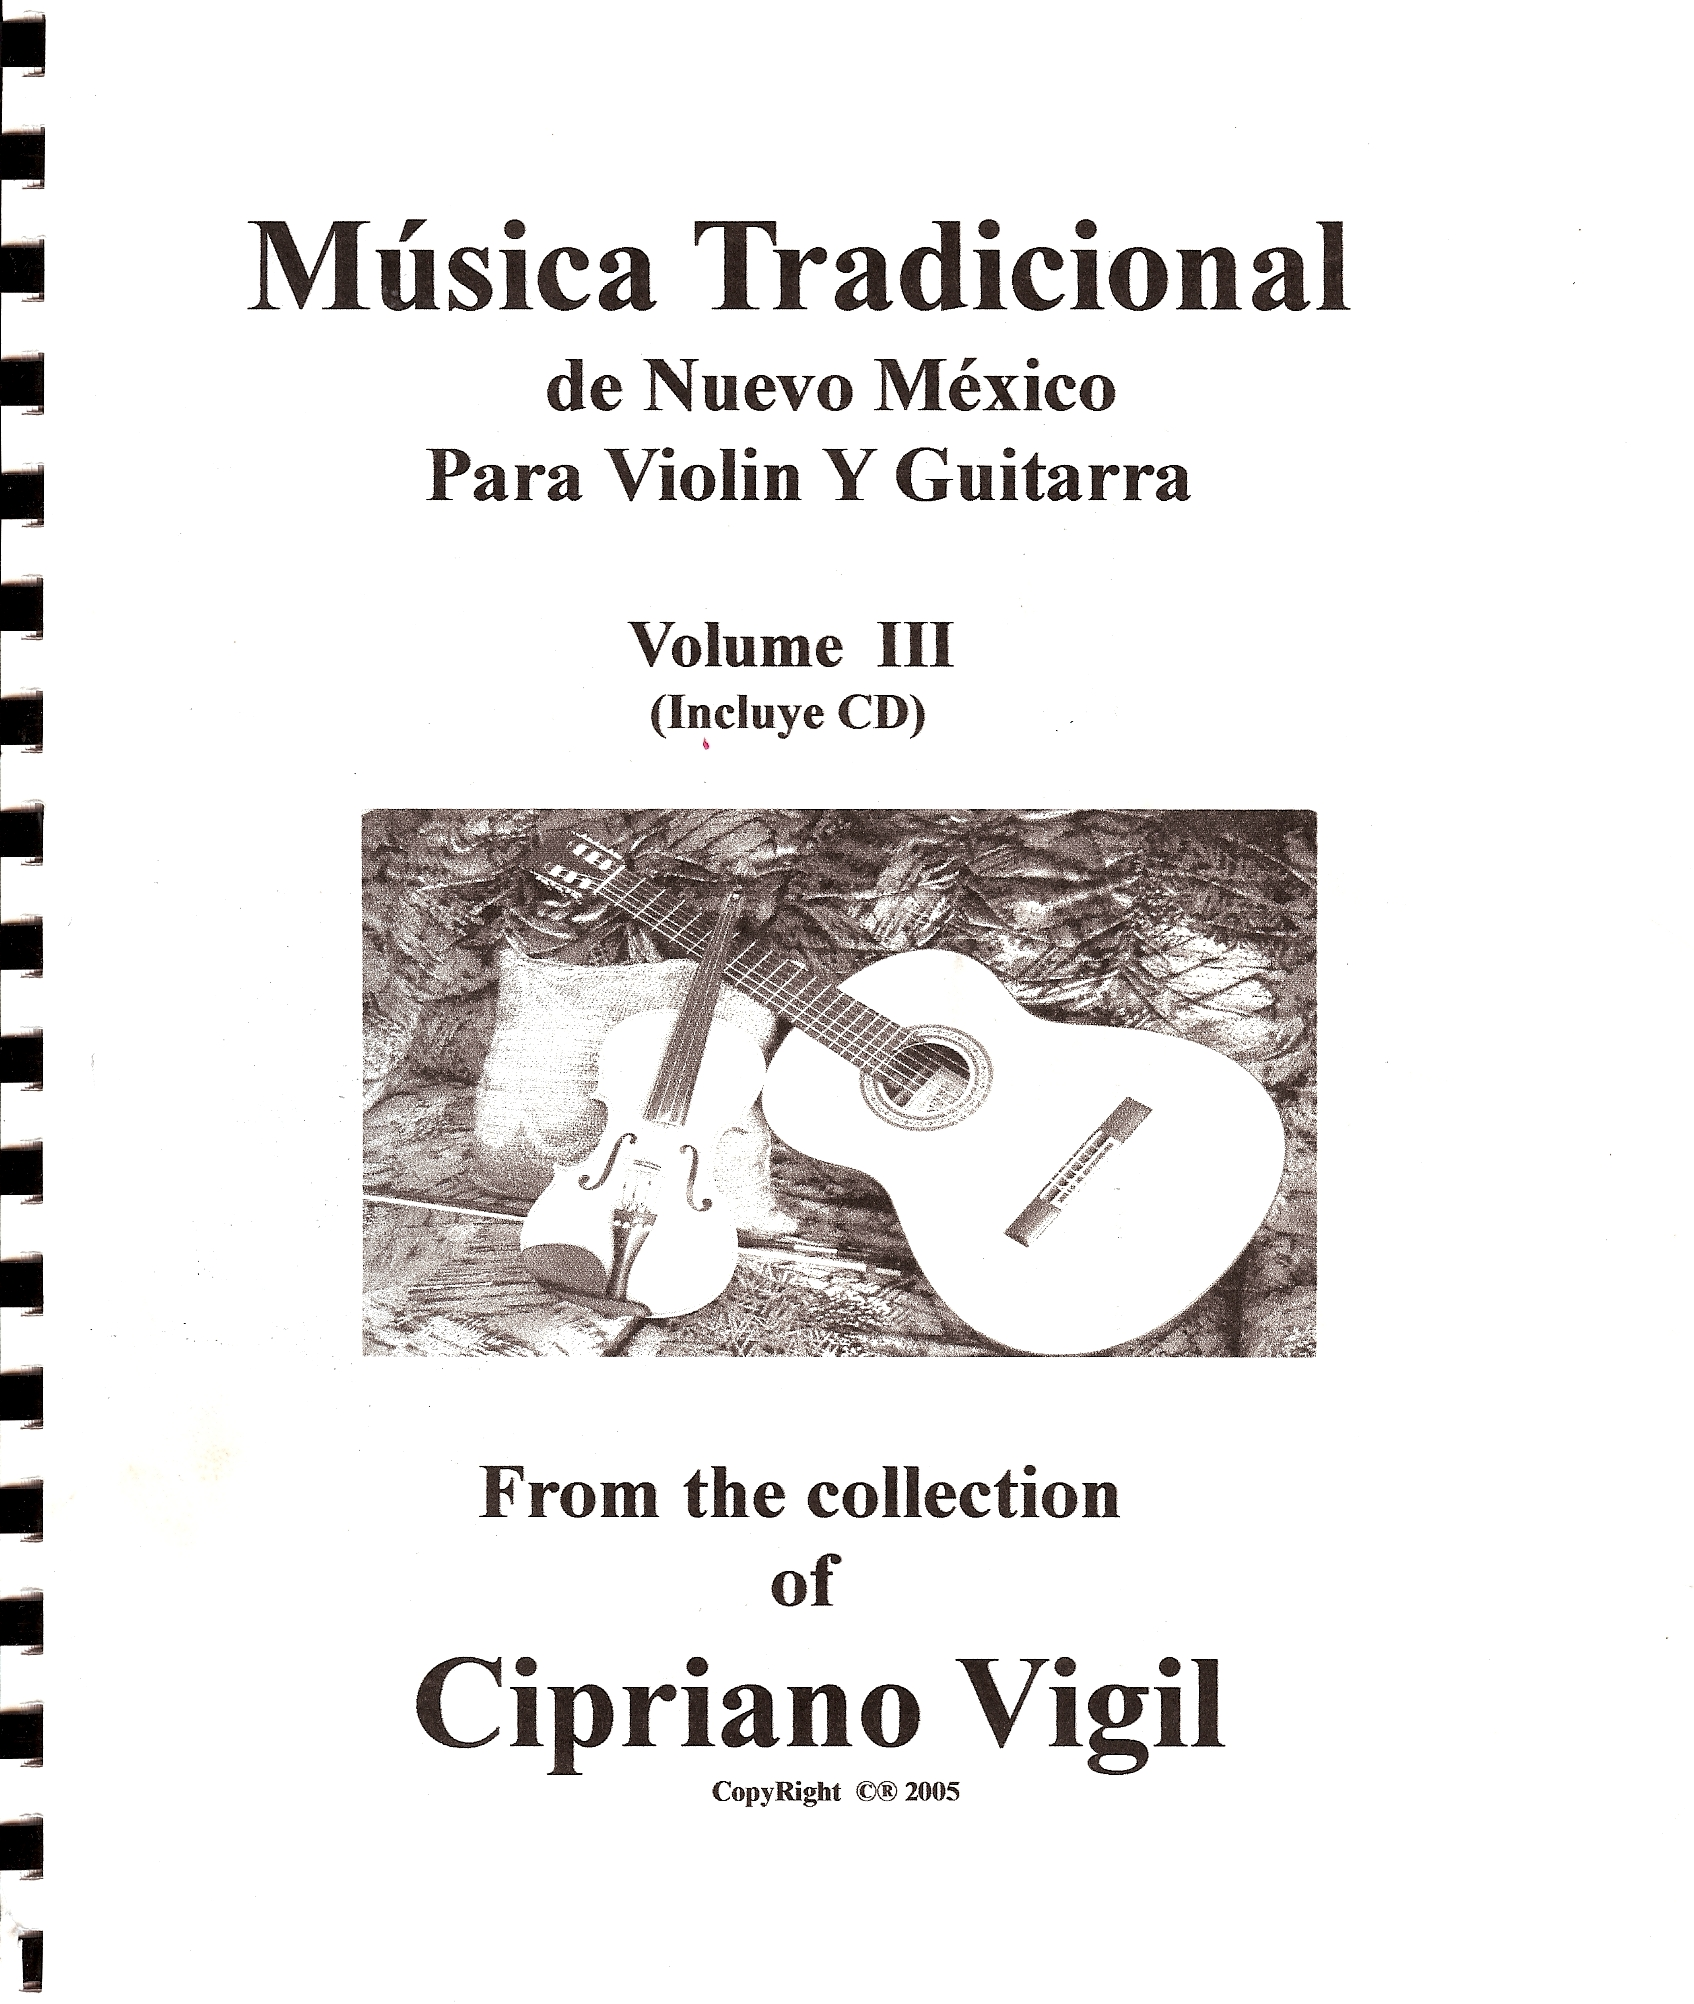 Traditional Folk Music, Volume III - Cipriano Vigil